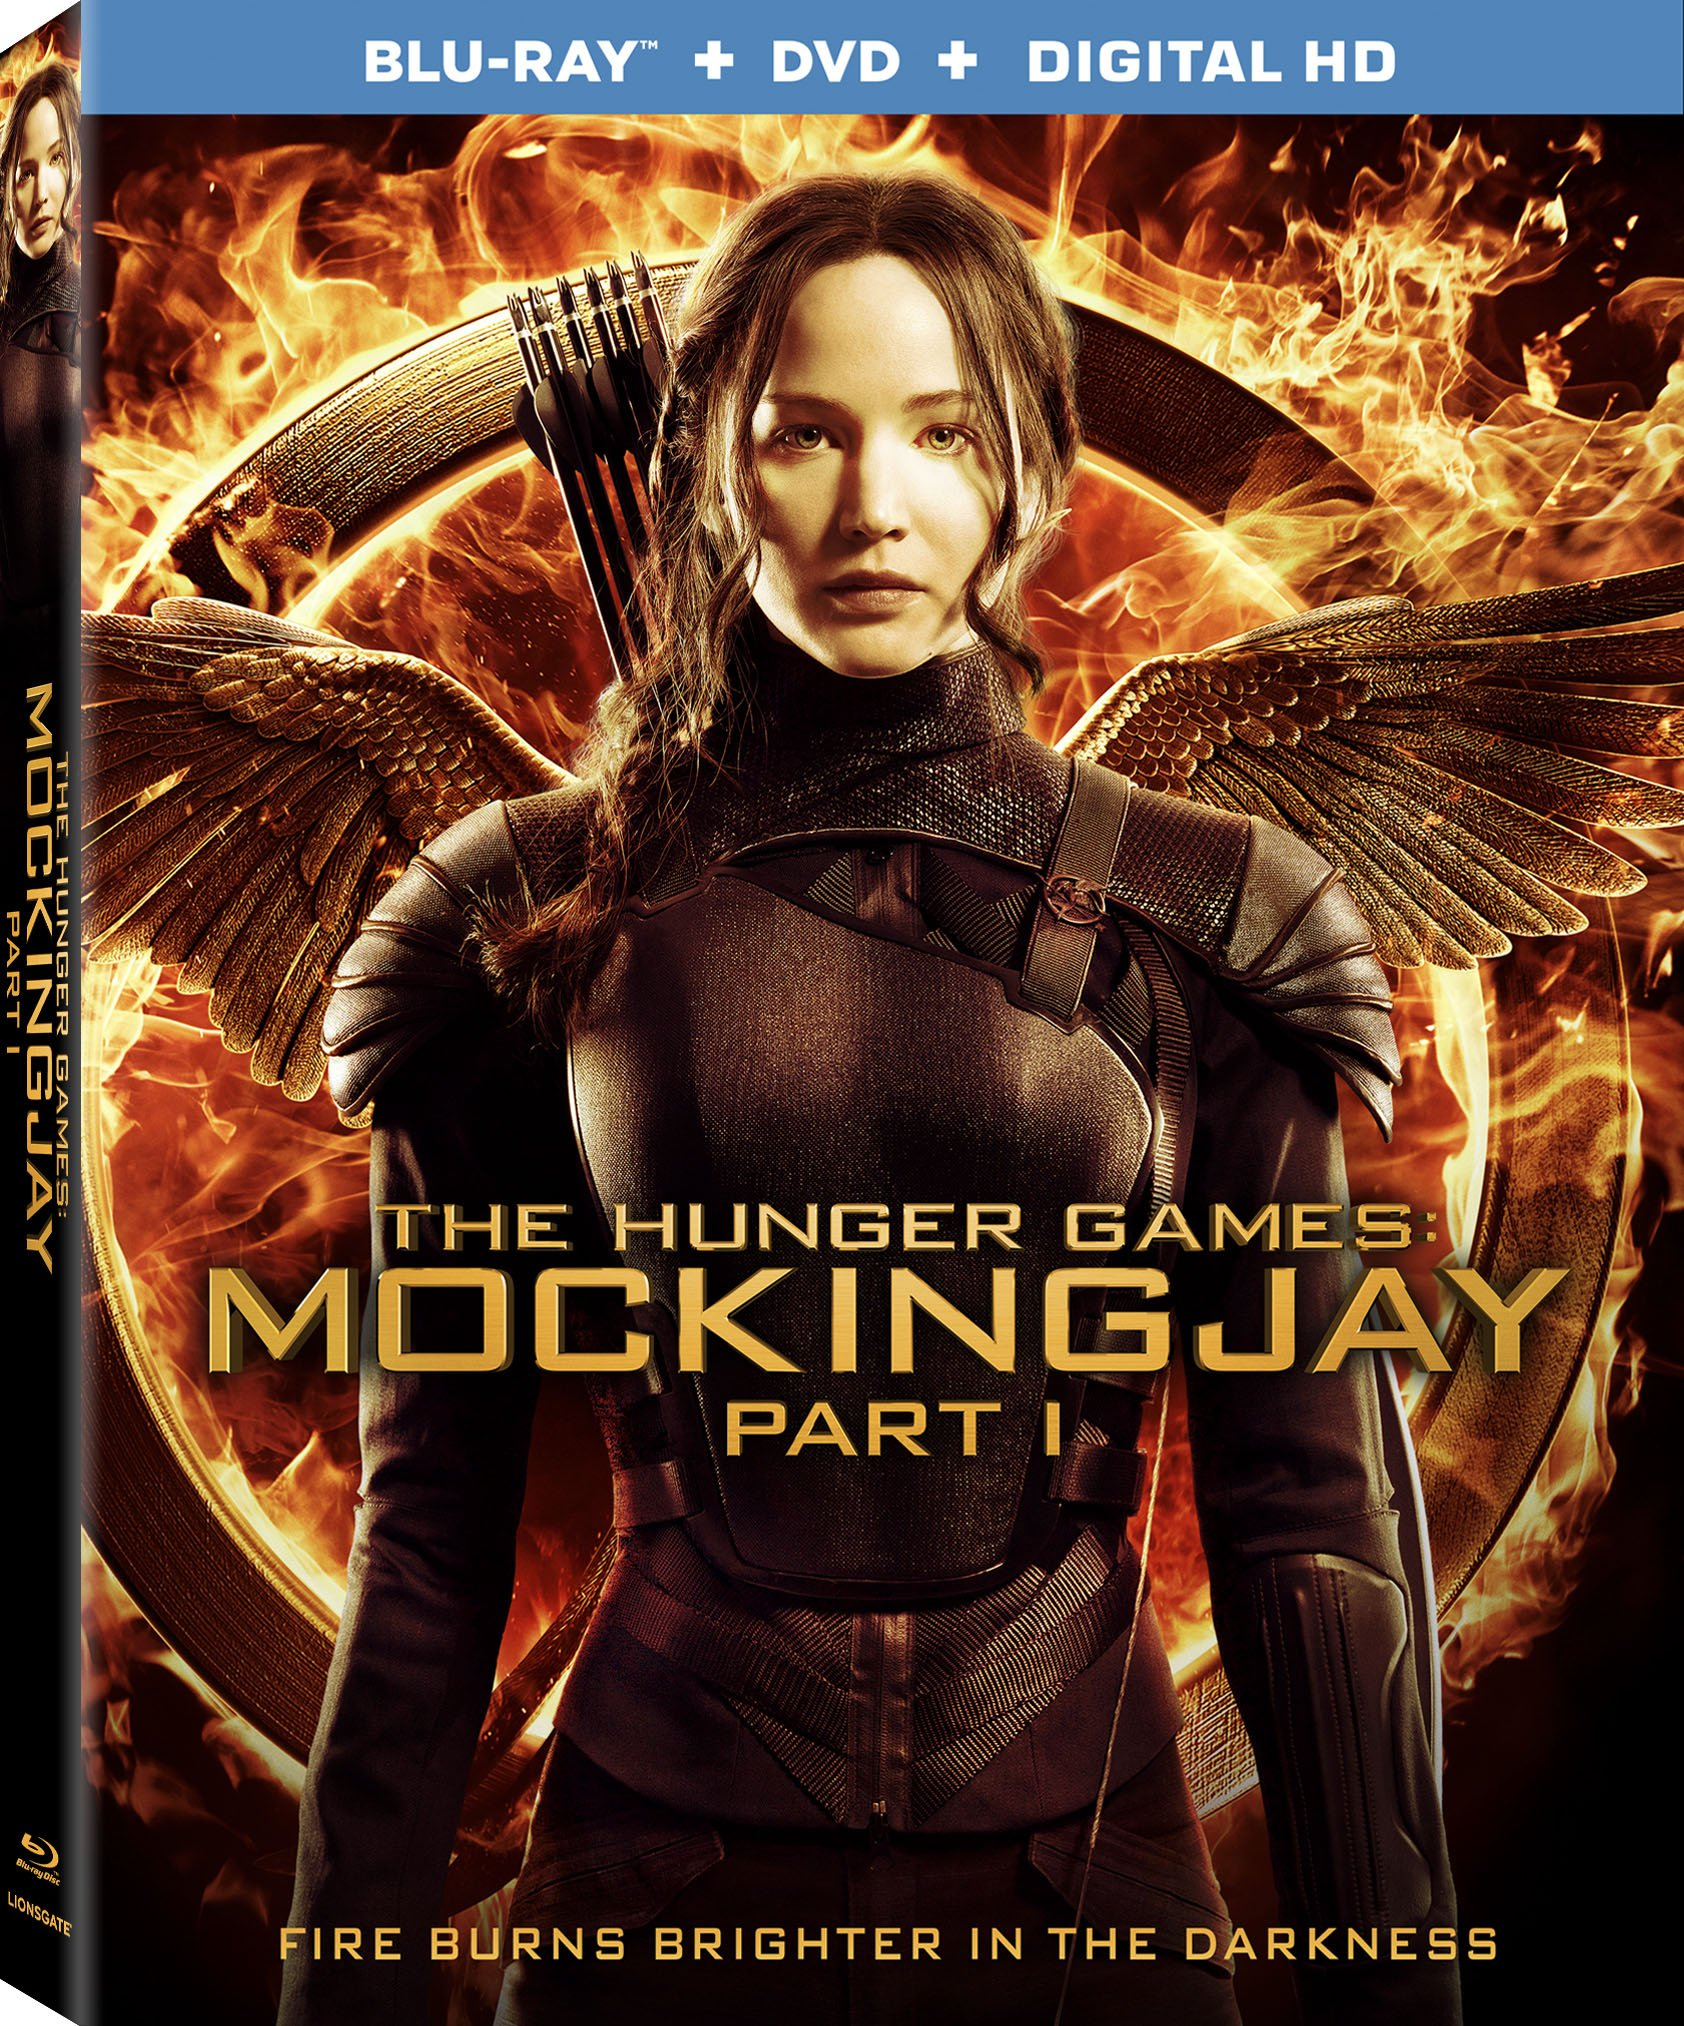 Download Film The Hunger Games : Mockingjay Part 1, 2